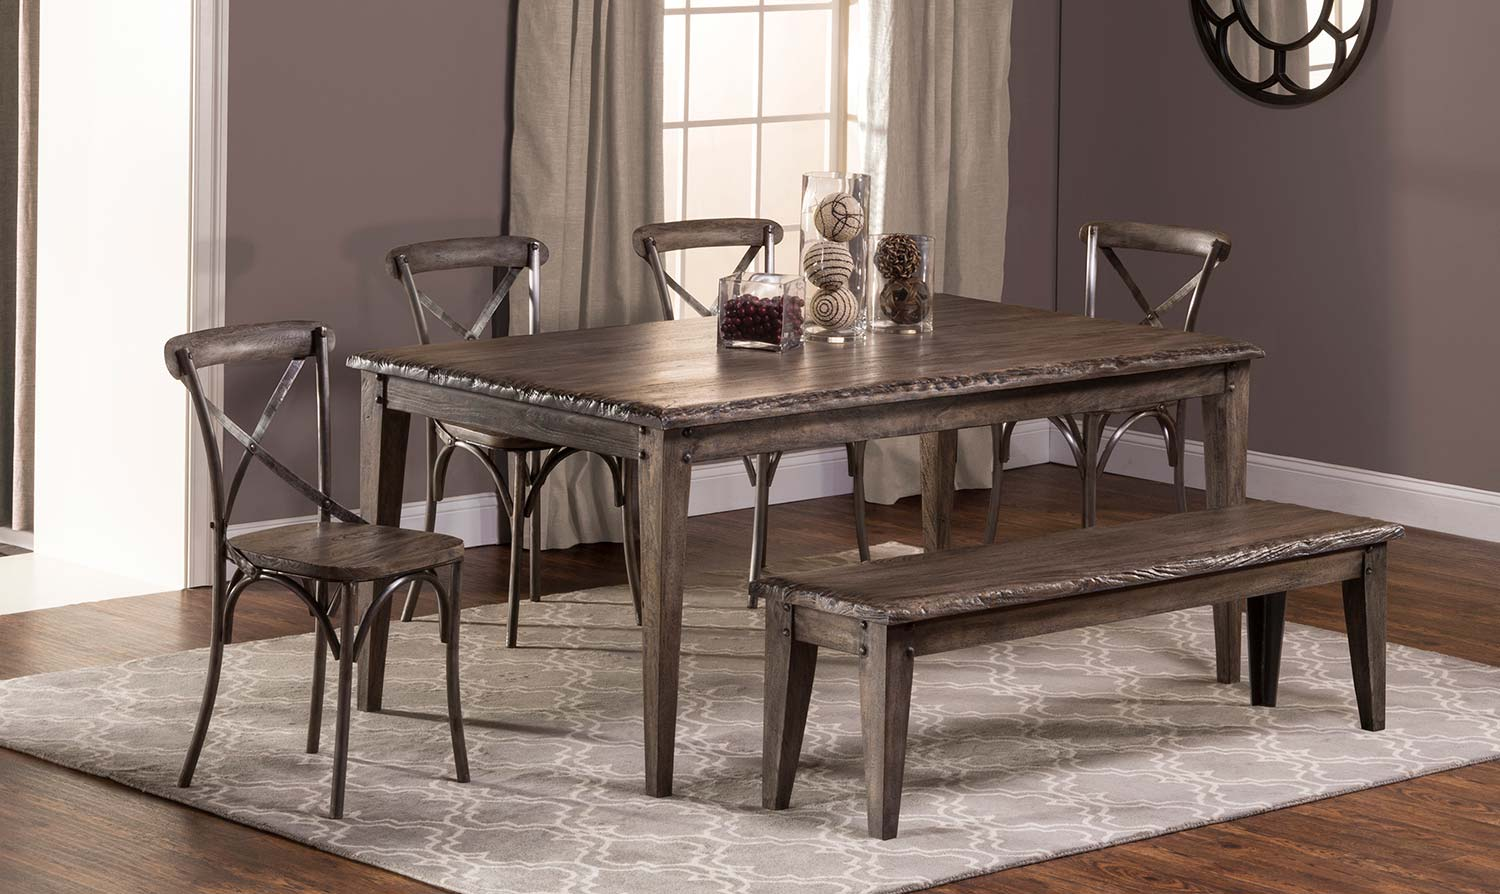 Hillsdale Lorient 6 PC Rectangle Dining Set with X Back Chair and Bench - Washed Charcoal Gray/Distressed Black